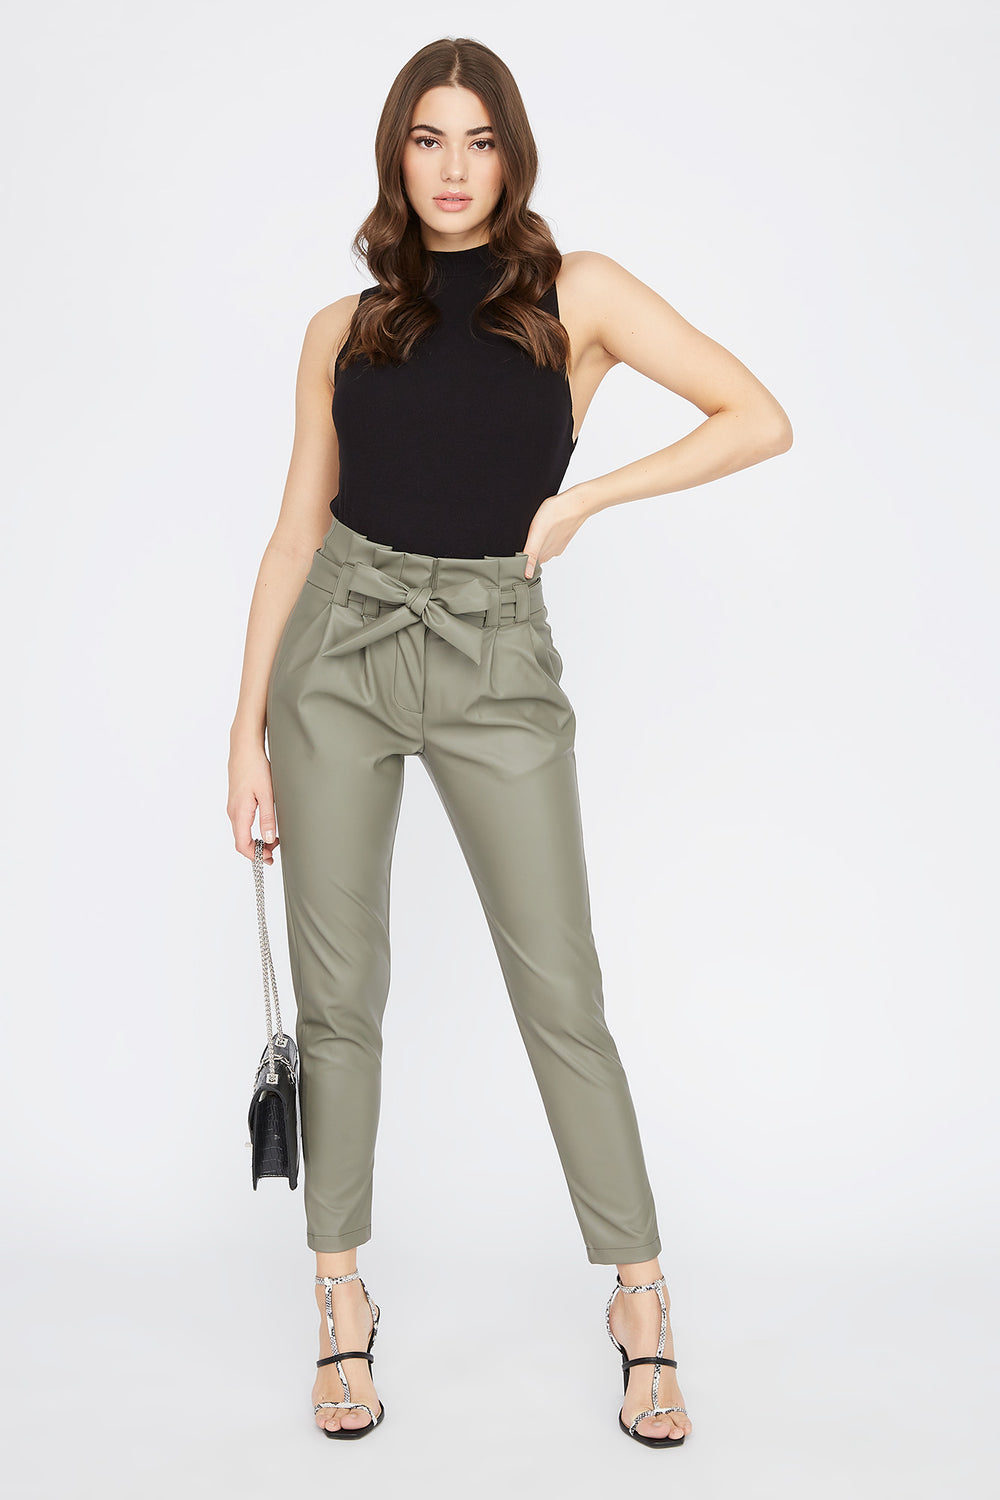 Faux-Leather Self Belted Paperbag Pant Dark Green